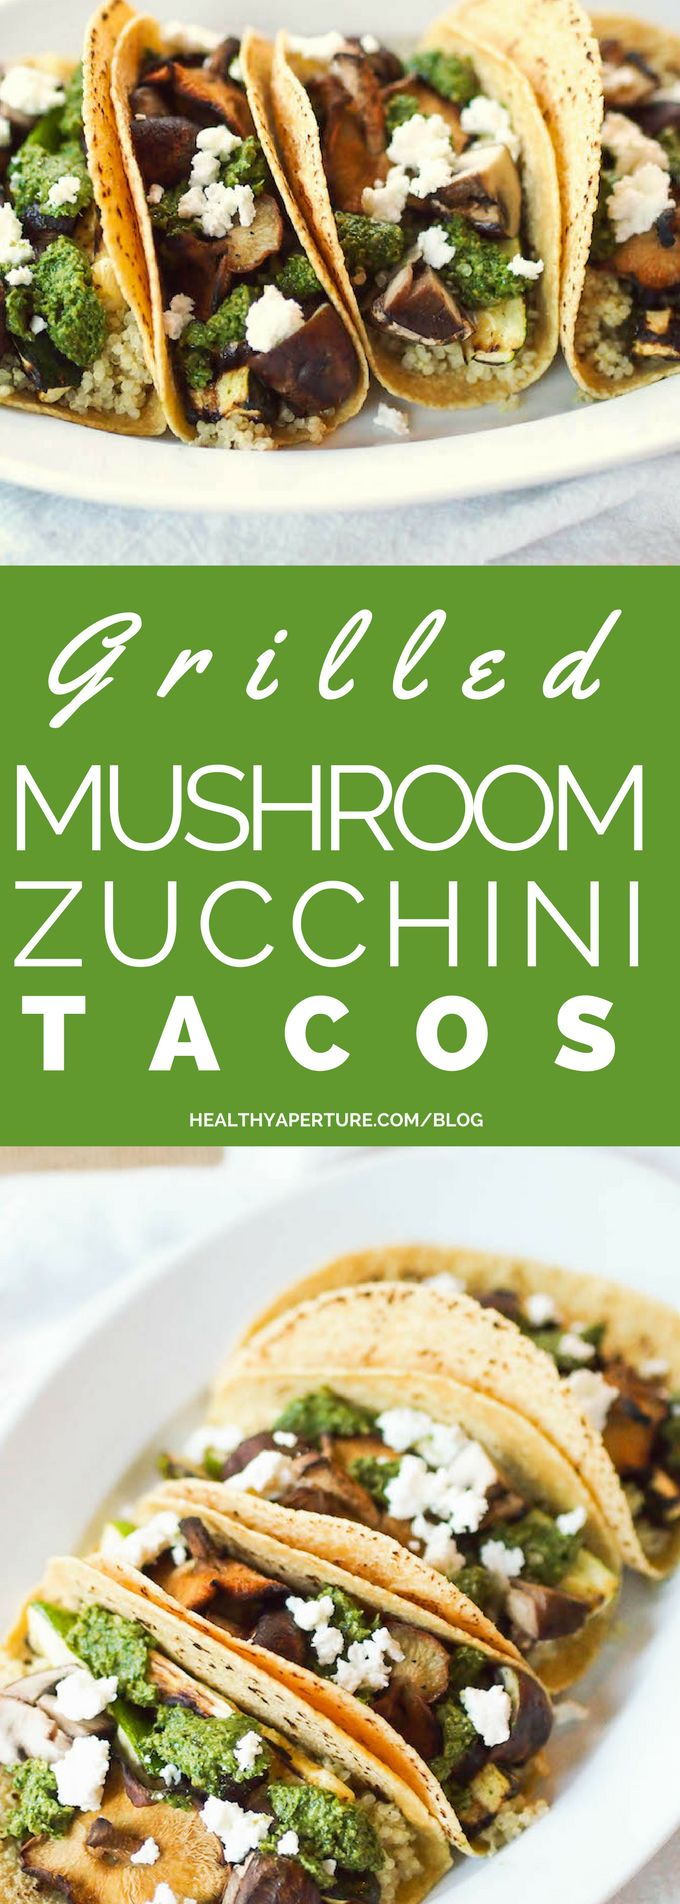 17 Best ideas about Grilled Mushrooms on Pinterest ...